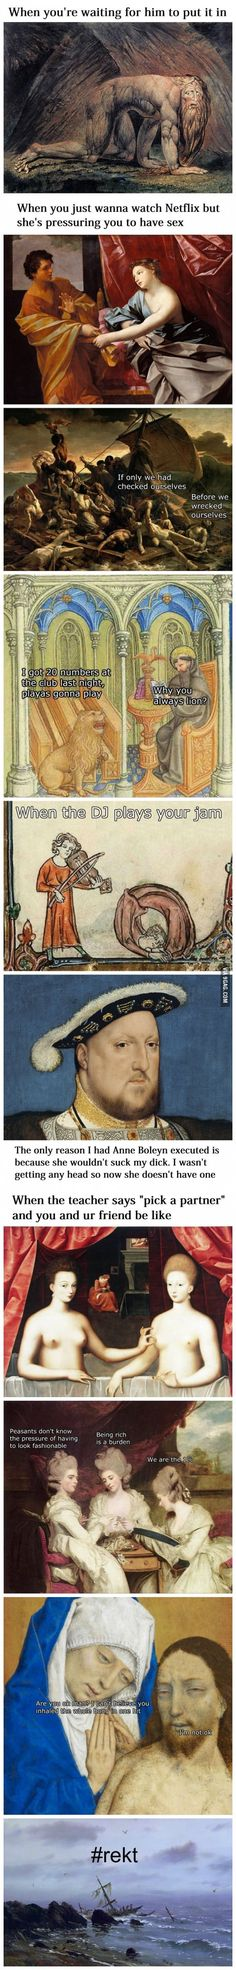 Classical Art Memes Latest (Part-2)